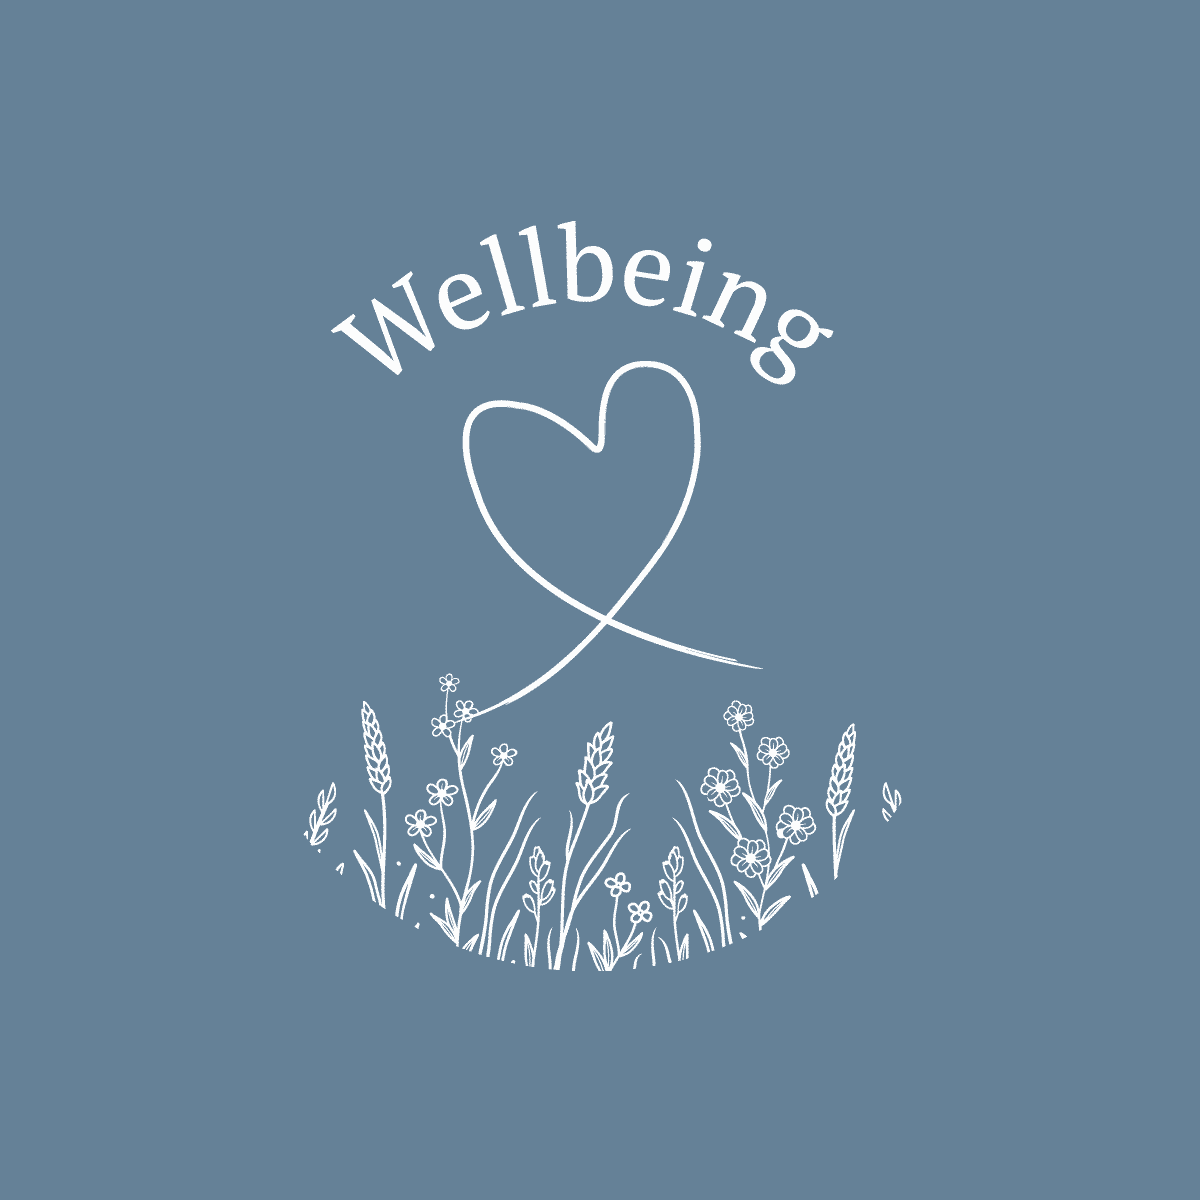 Garden House Residential Care Home Wellbeing Icon